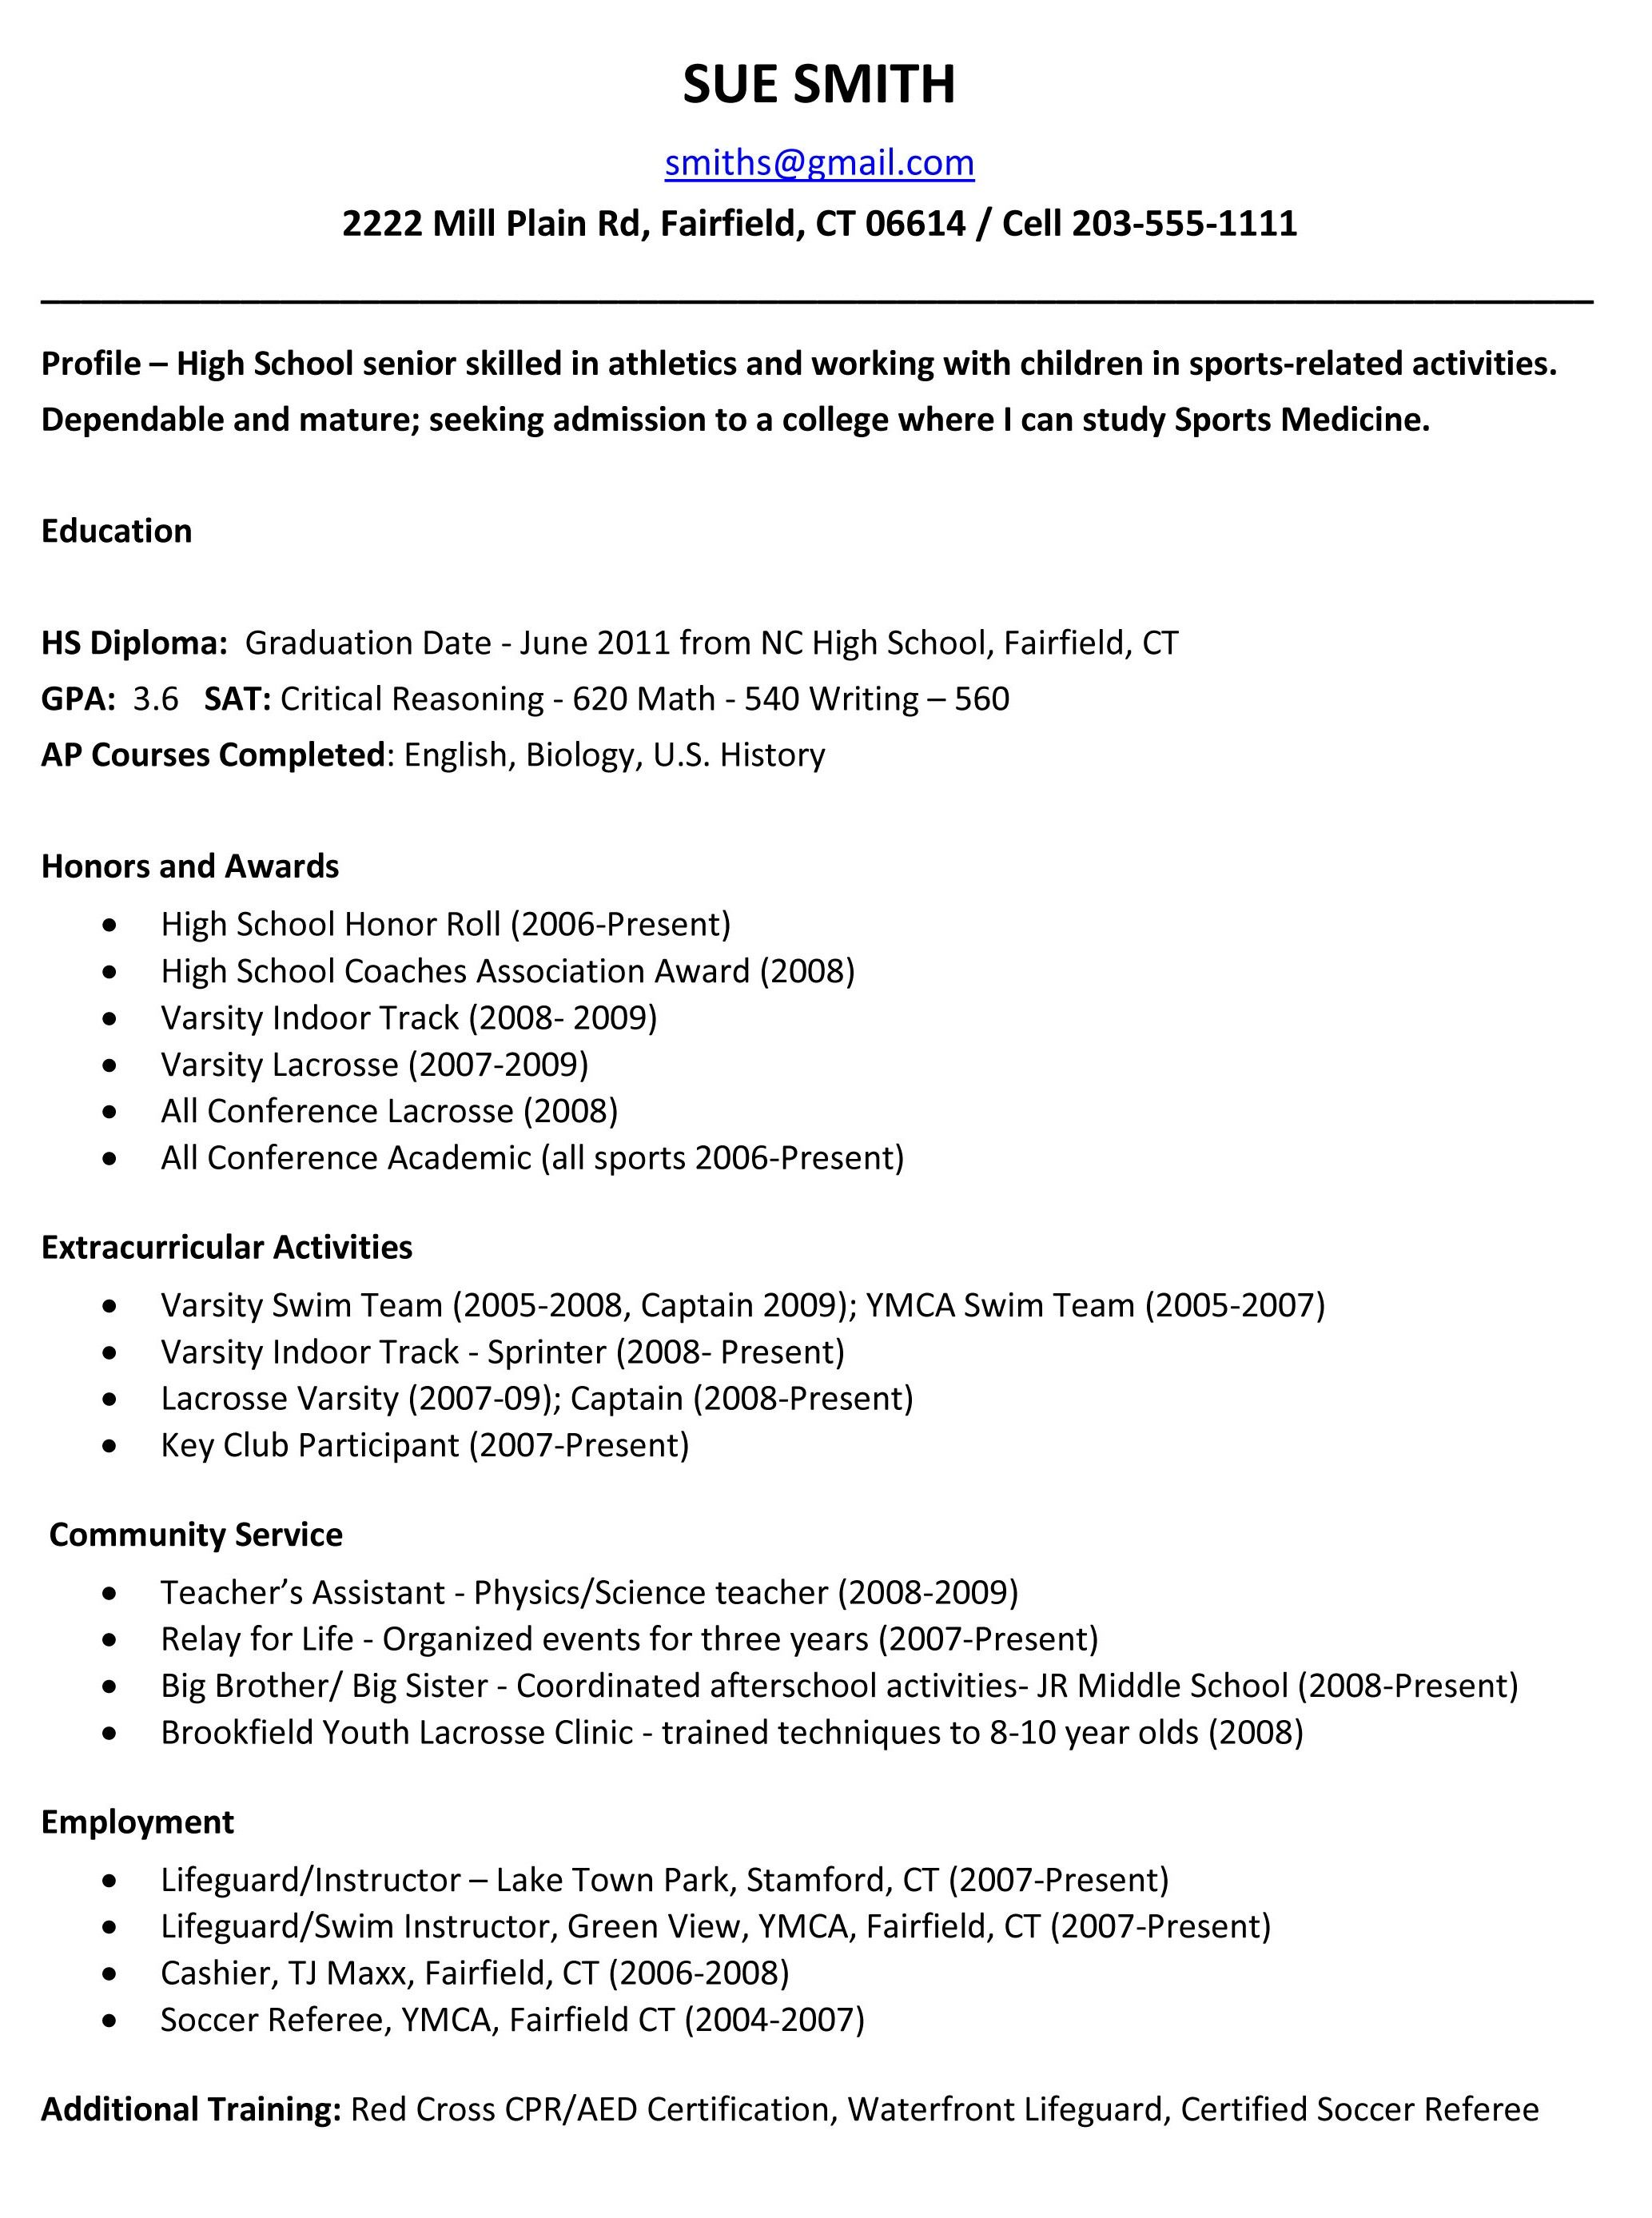 example resume for high school students for college applications school resume templateregularmidwesternerscom regularmidwesterners - Sample Resume For College Application